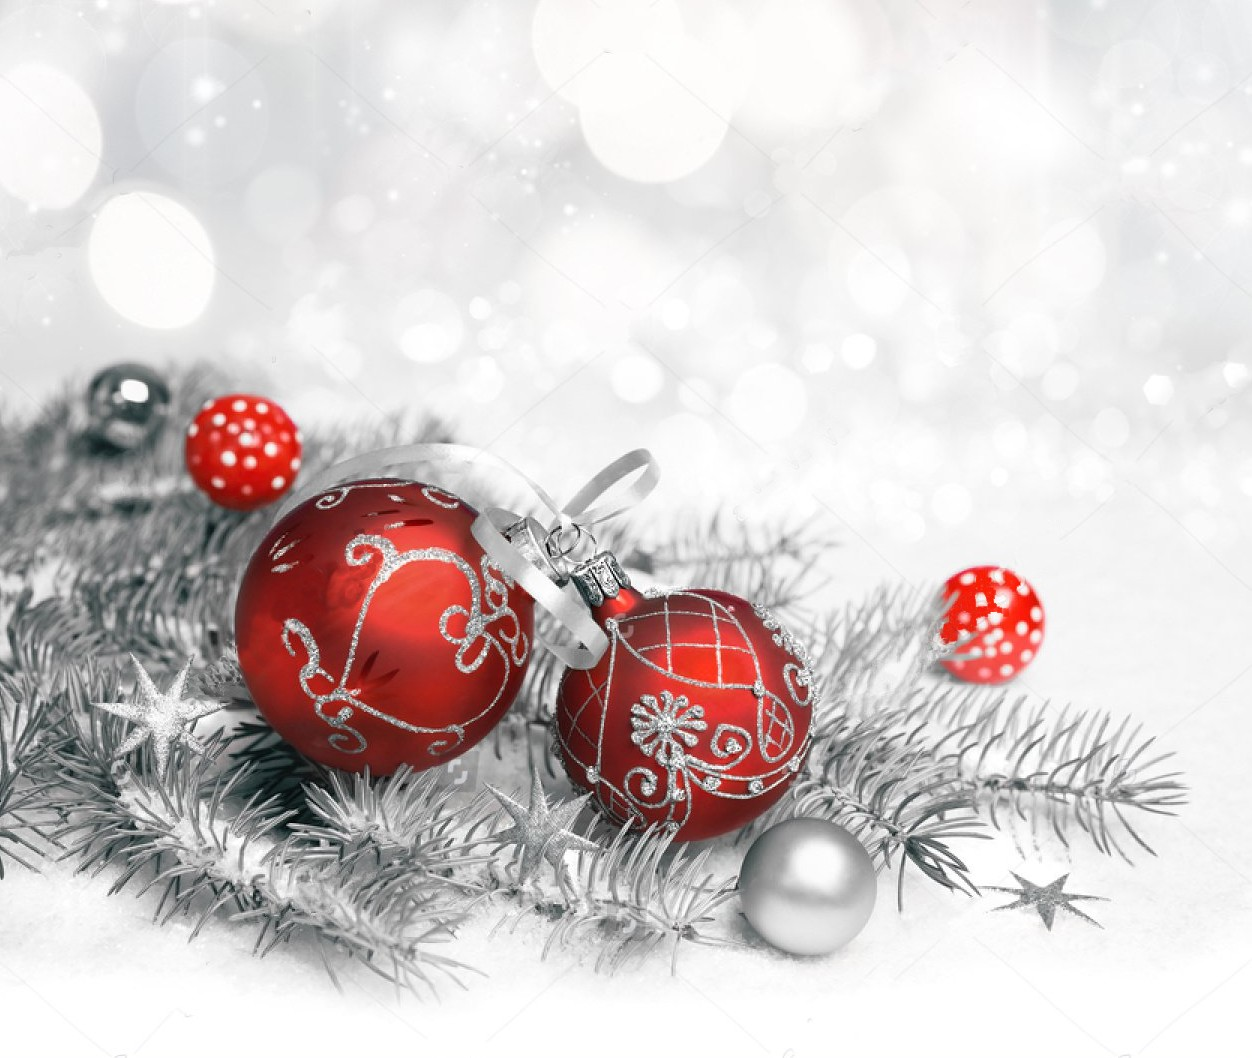 Red Decorations Silver Ornament Neutral Winter Bokeh